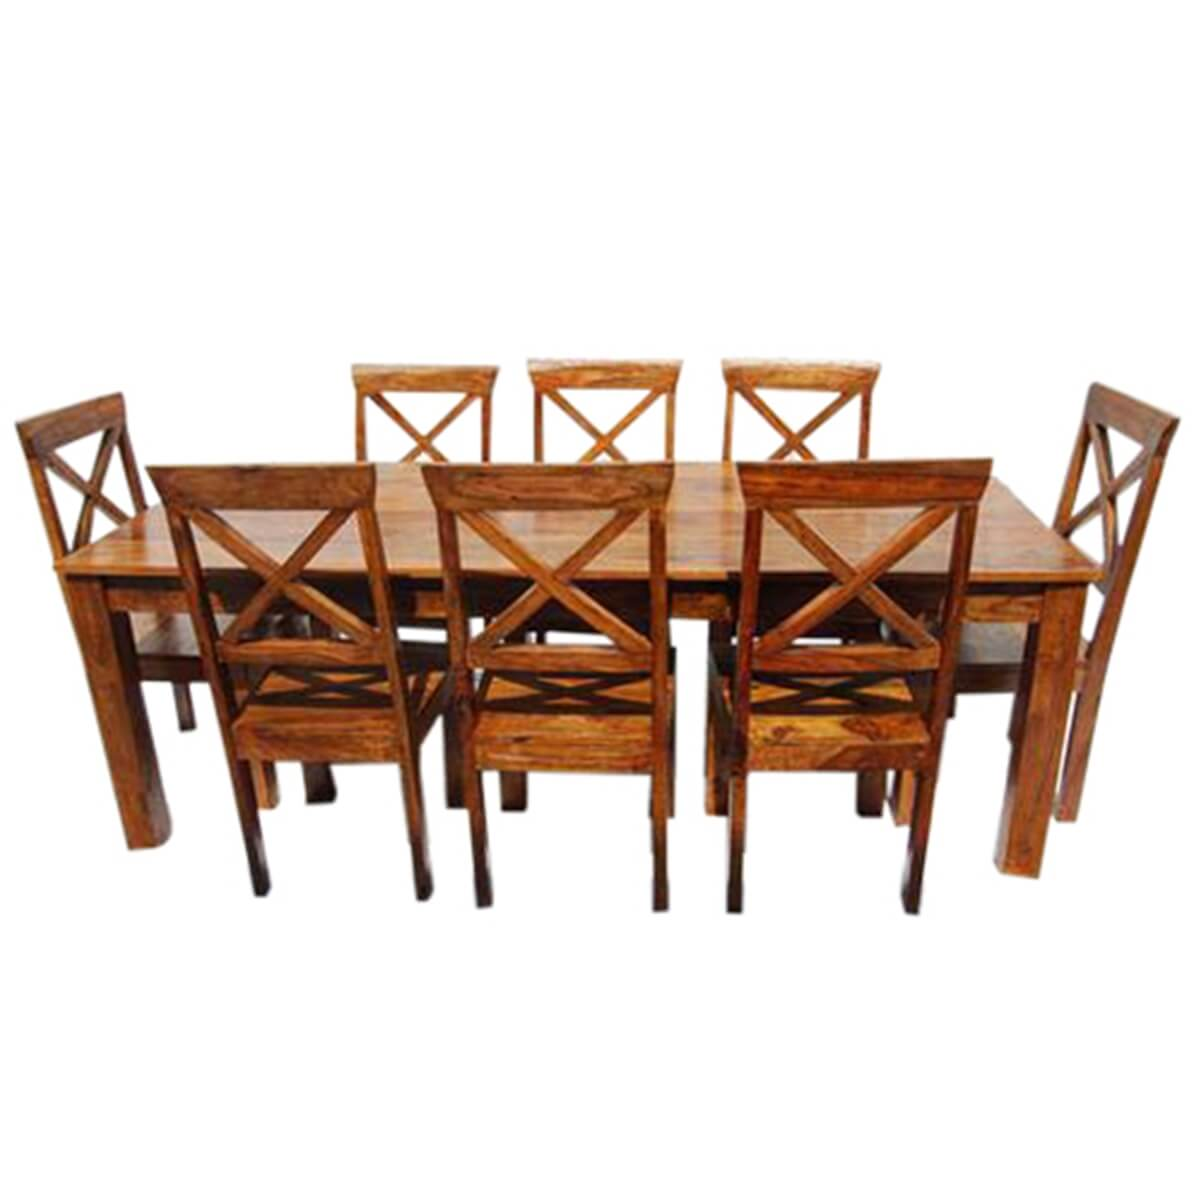 Large rustic oklahoma solid wood dining table chair set for Solid wood dining table sets